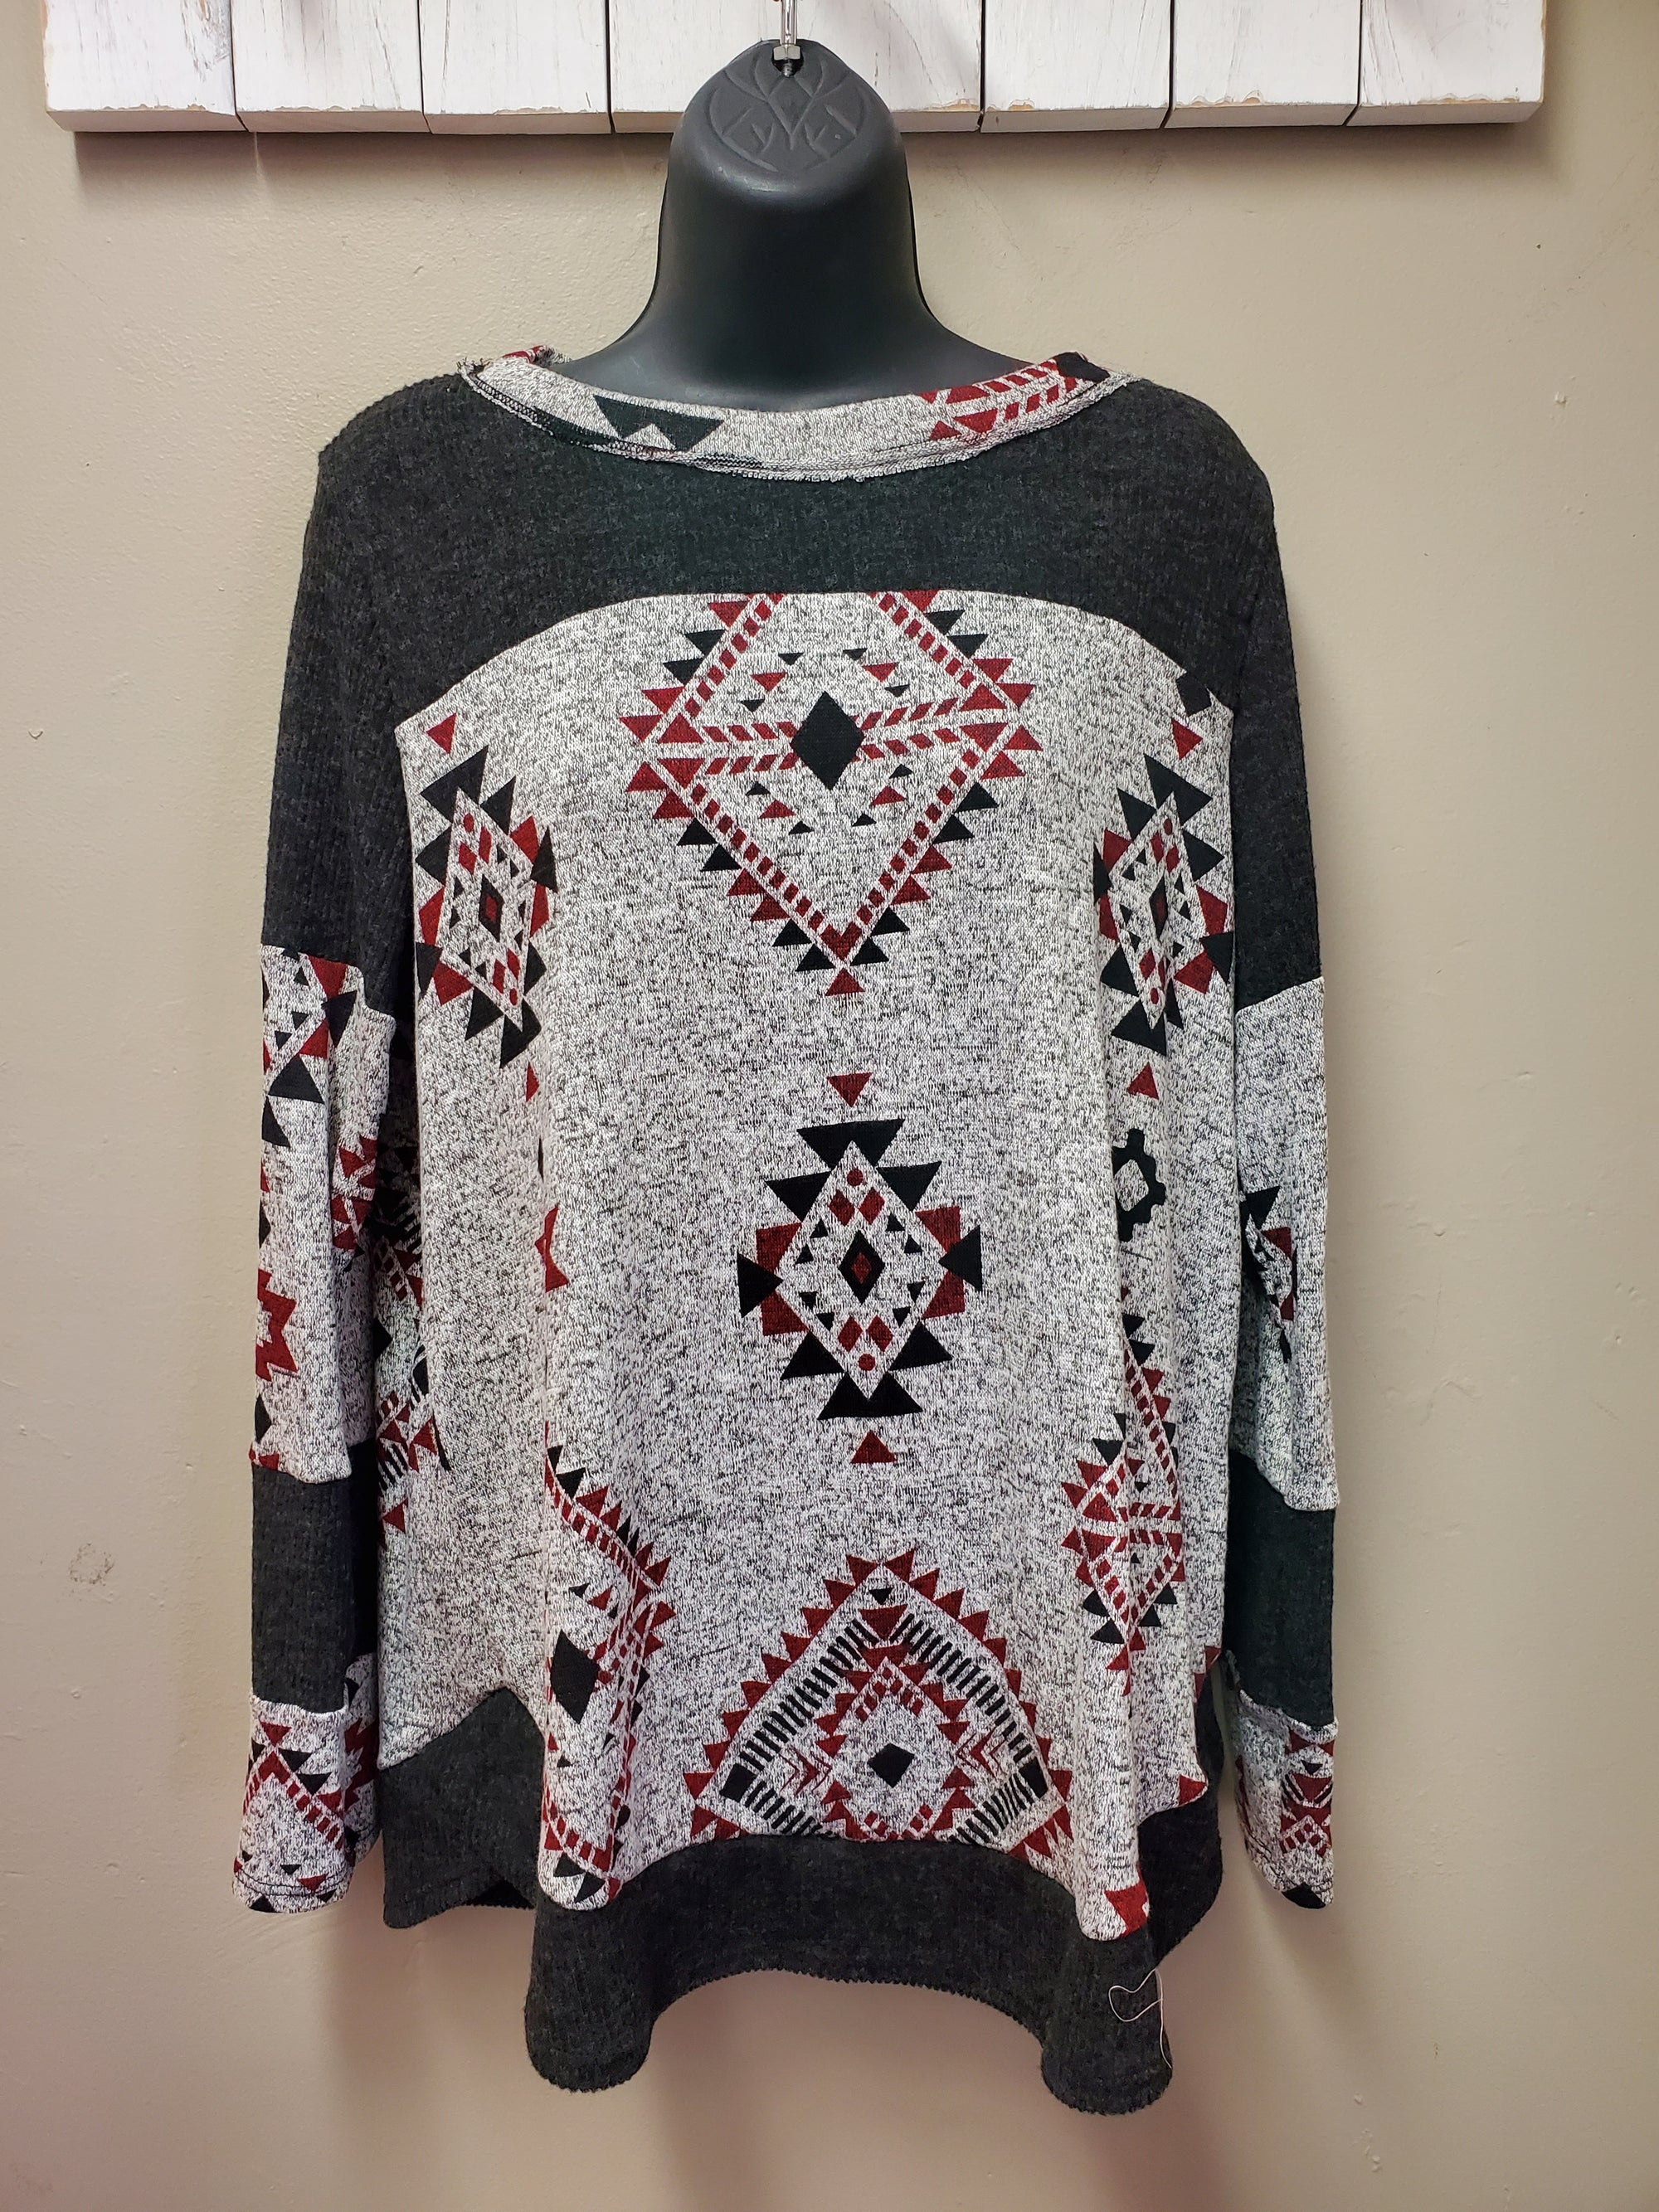 So Cozy Print & Color Blocked Long Sleeve Casual Top - You-nique Bou-tique